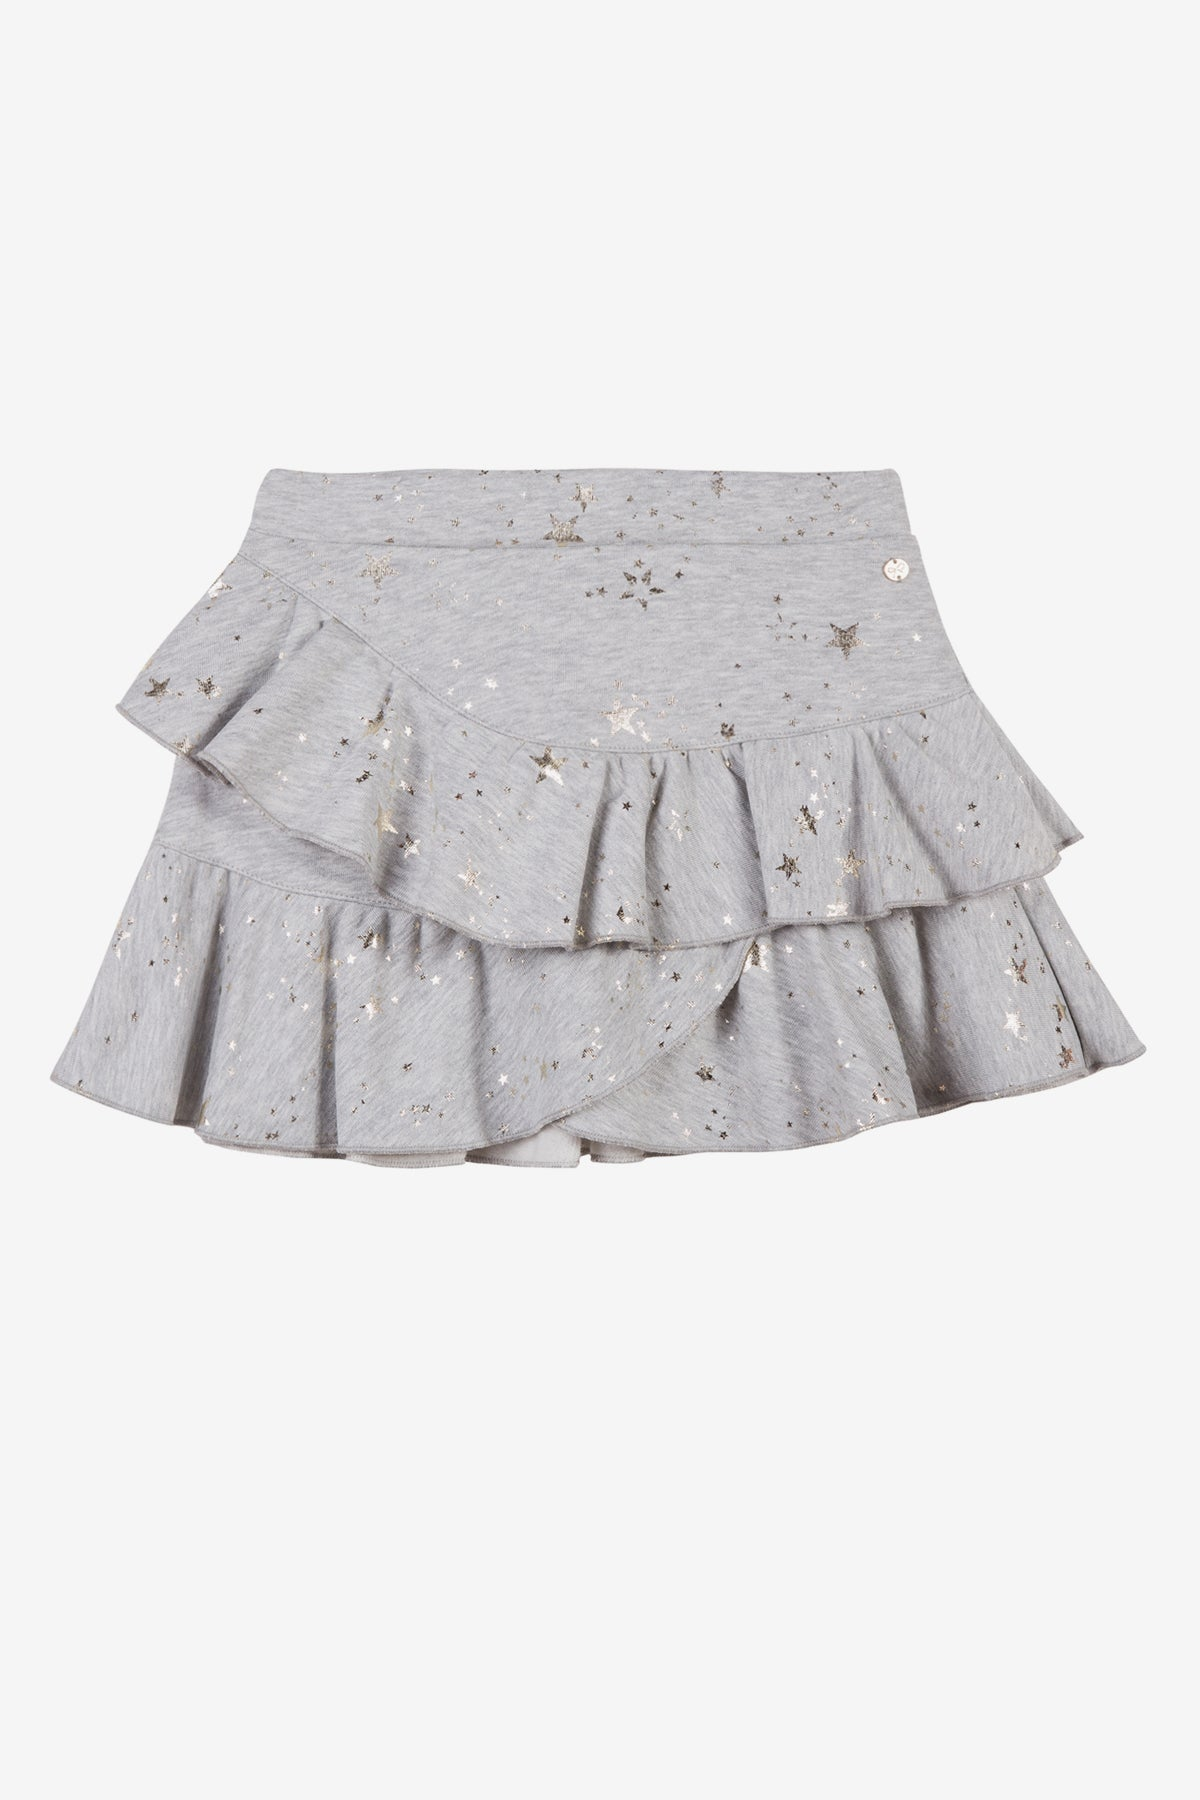 Lili Gaufrette Skirt - Grey